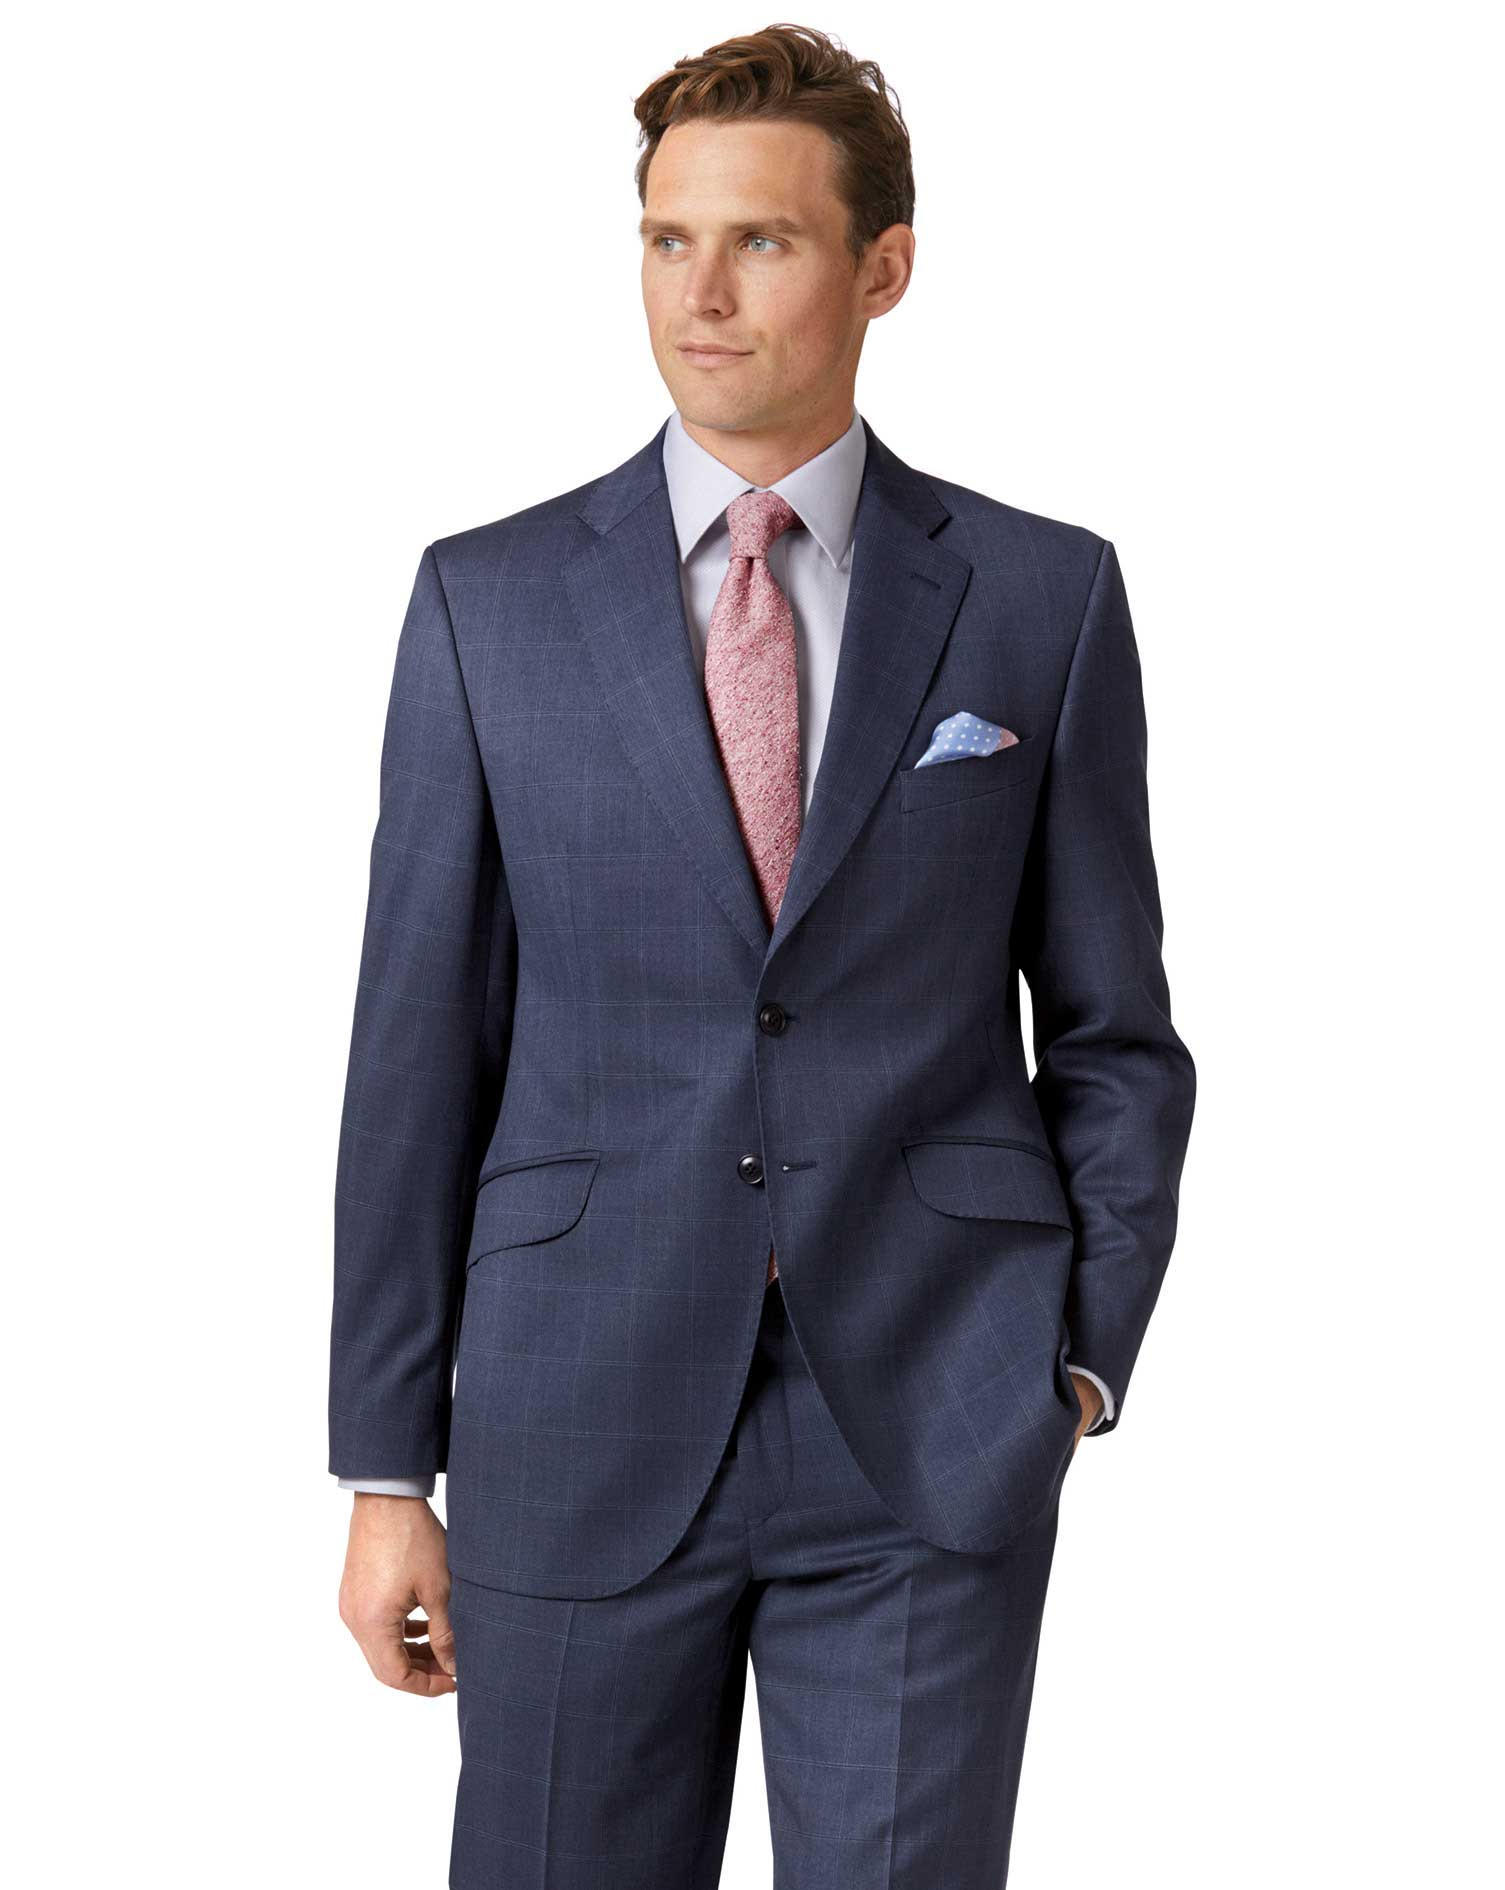 Airforce Blue Classic Fit Italian Suit Wool Jacket Size 48 Regular by Charles Tyrwhitt